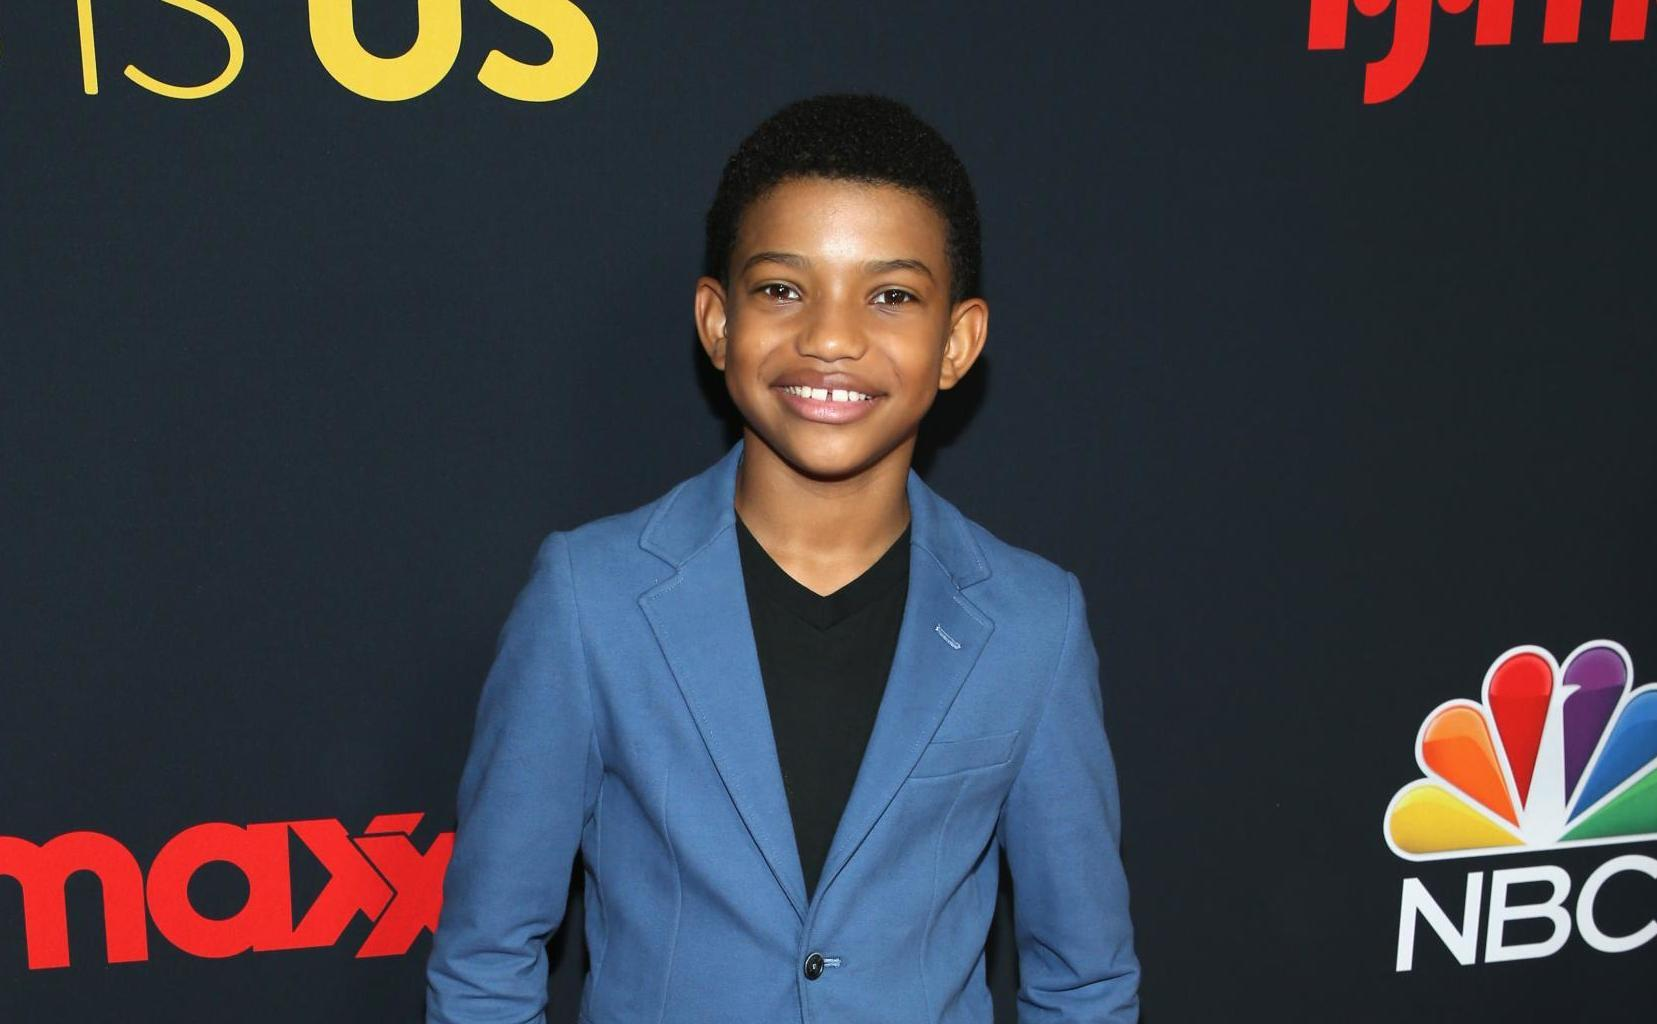 12-Year-Old This Is Us Star Lonnie Chavis Pens Eye-Opening Letter About Being Black And Experiencing Racism Already